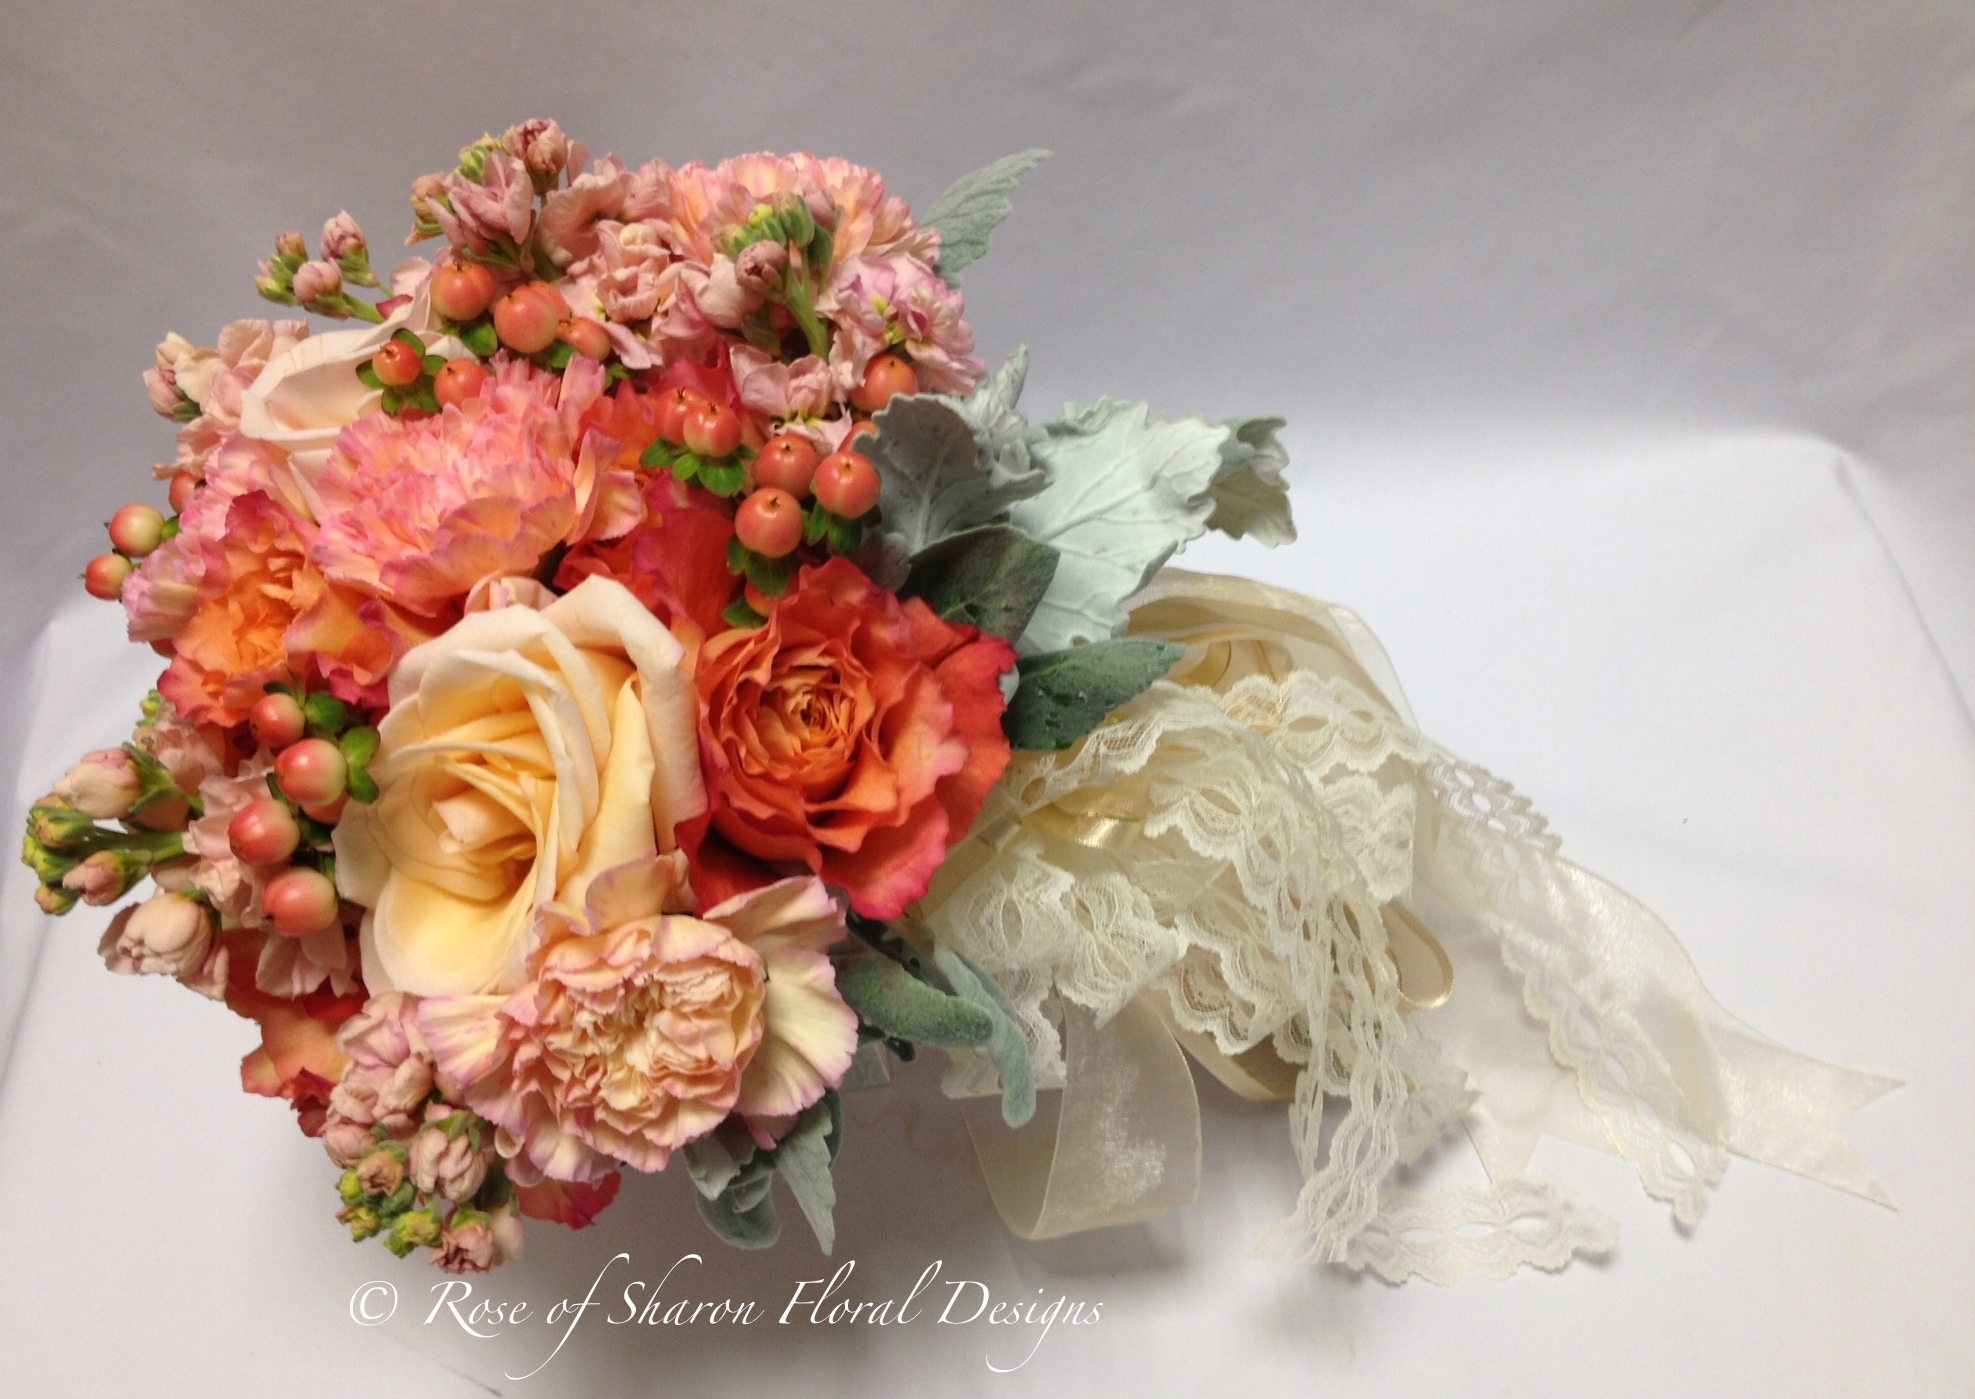 Peach Spring Mix hand Tied Bouquet, Rose of Sharon Floral Designs